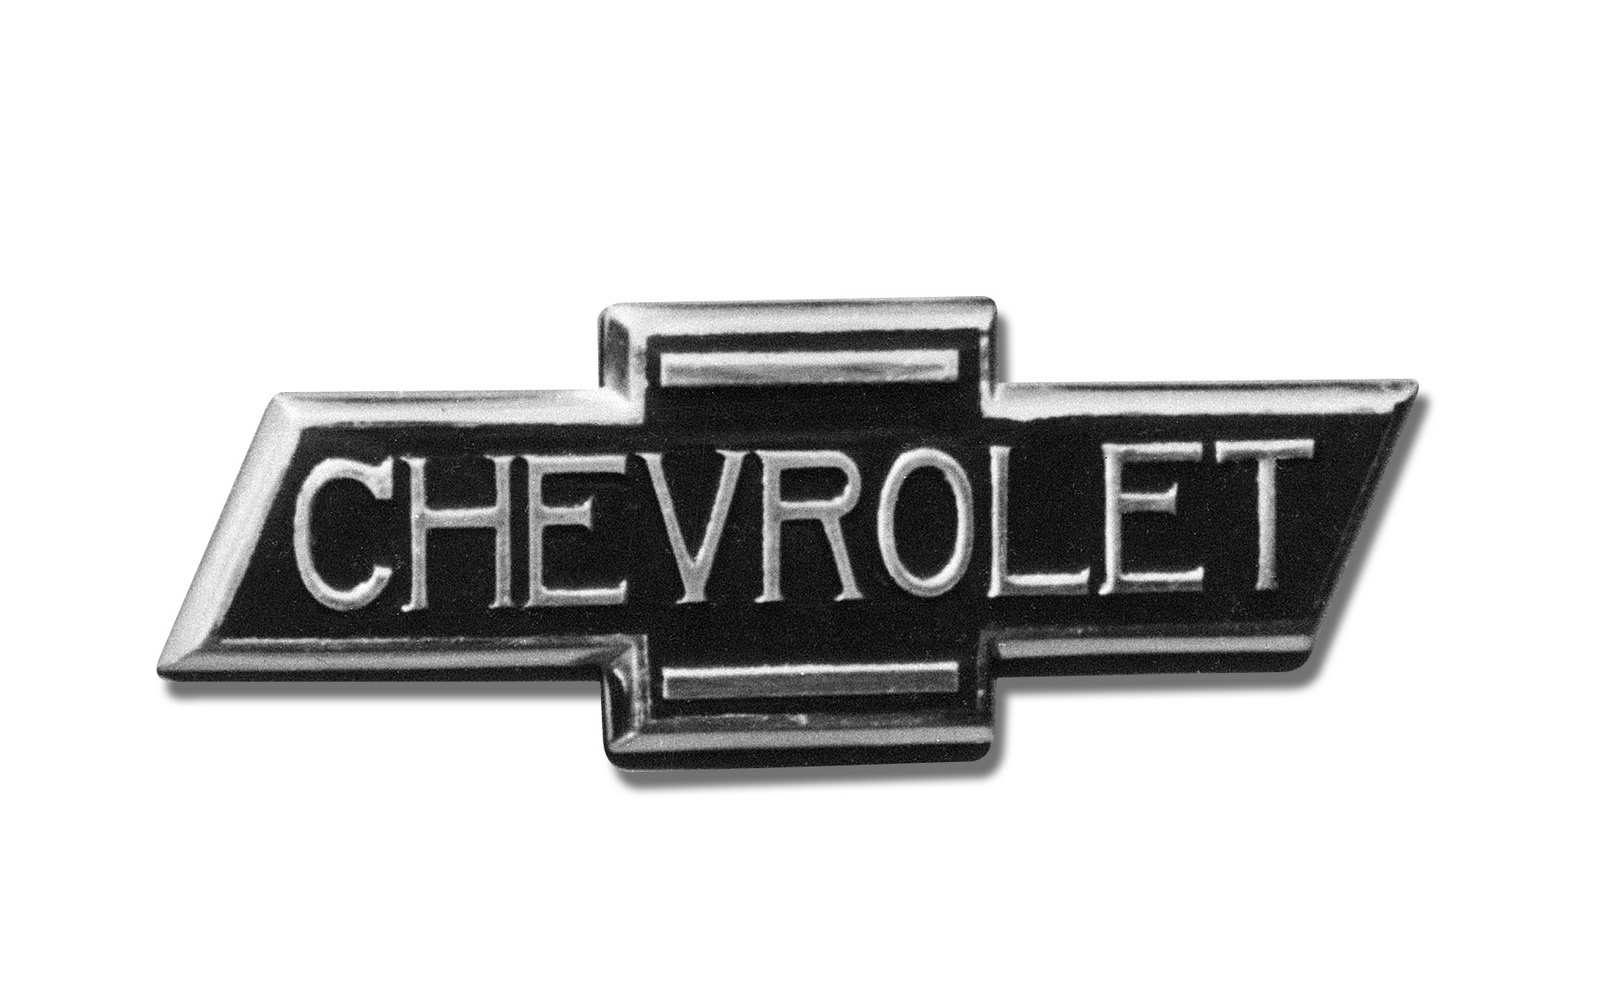 The Chevrolet bowtie as it appeared on all 1936 Chevrolet trucks.